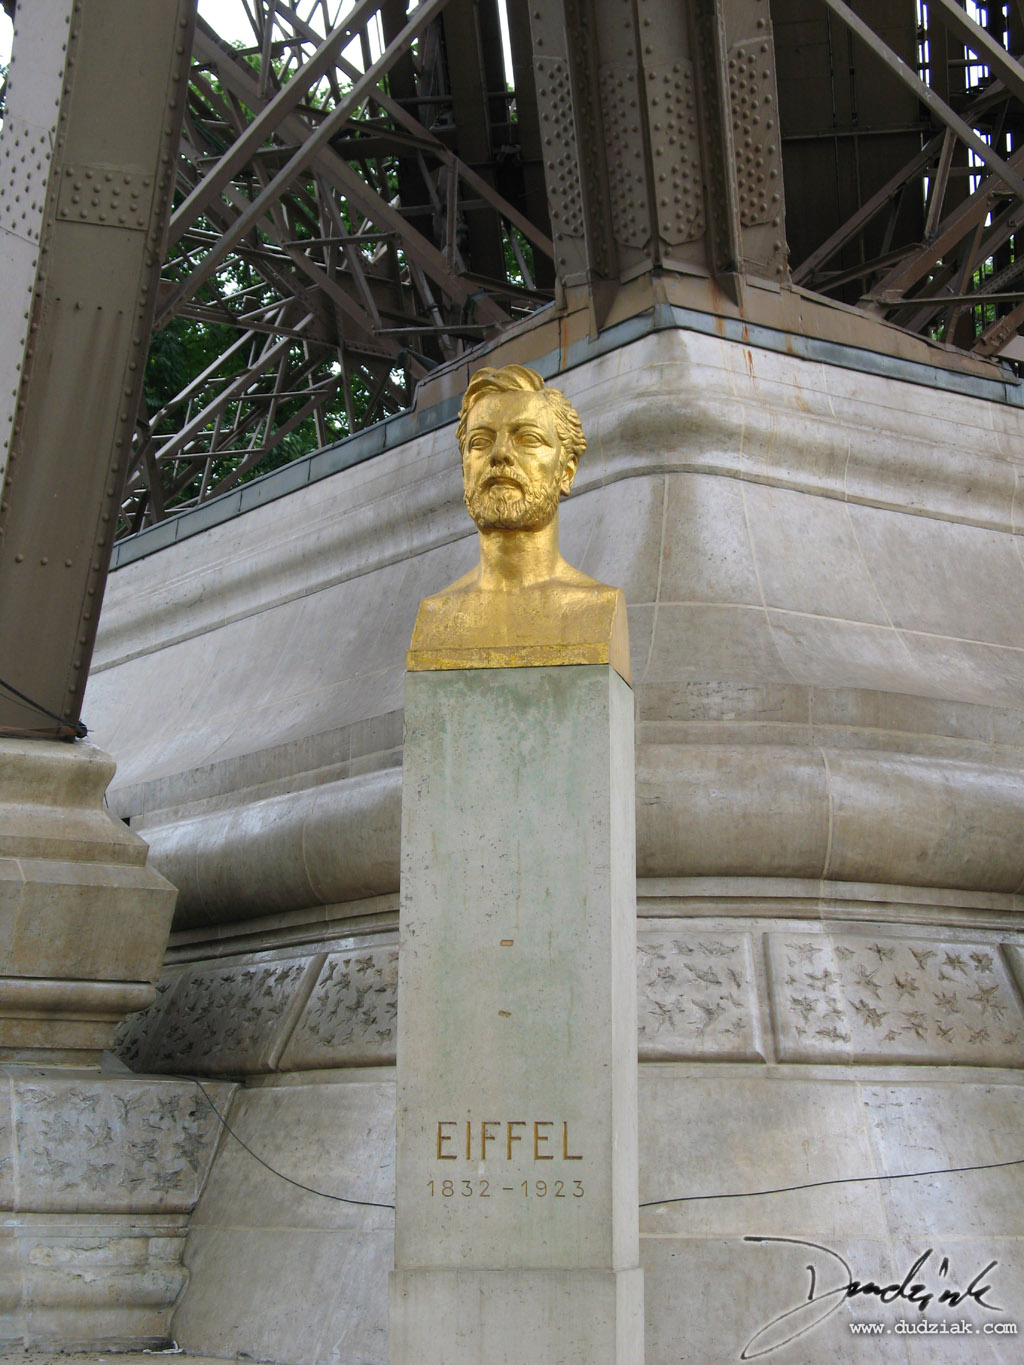 Pier,  Eiffel Tower,  Gustave Eiffel,  Paris France,  Bust